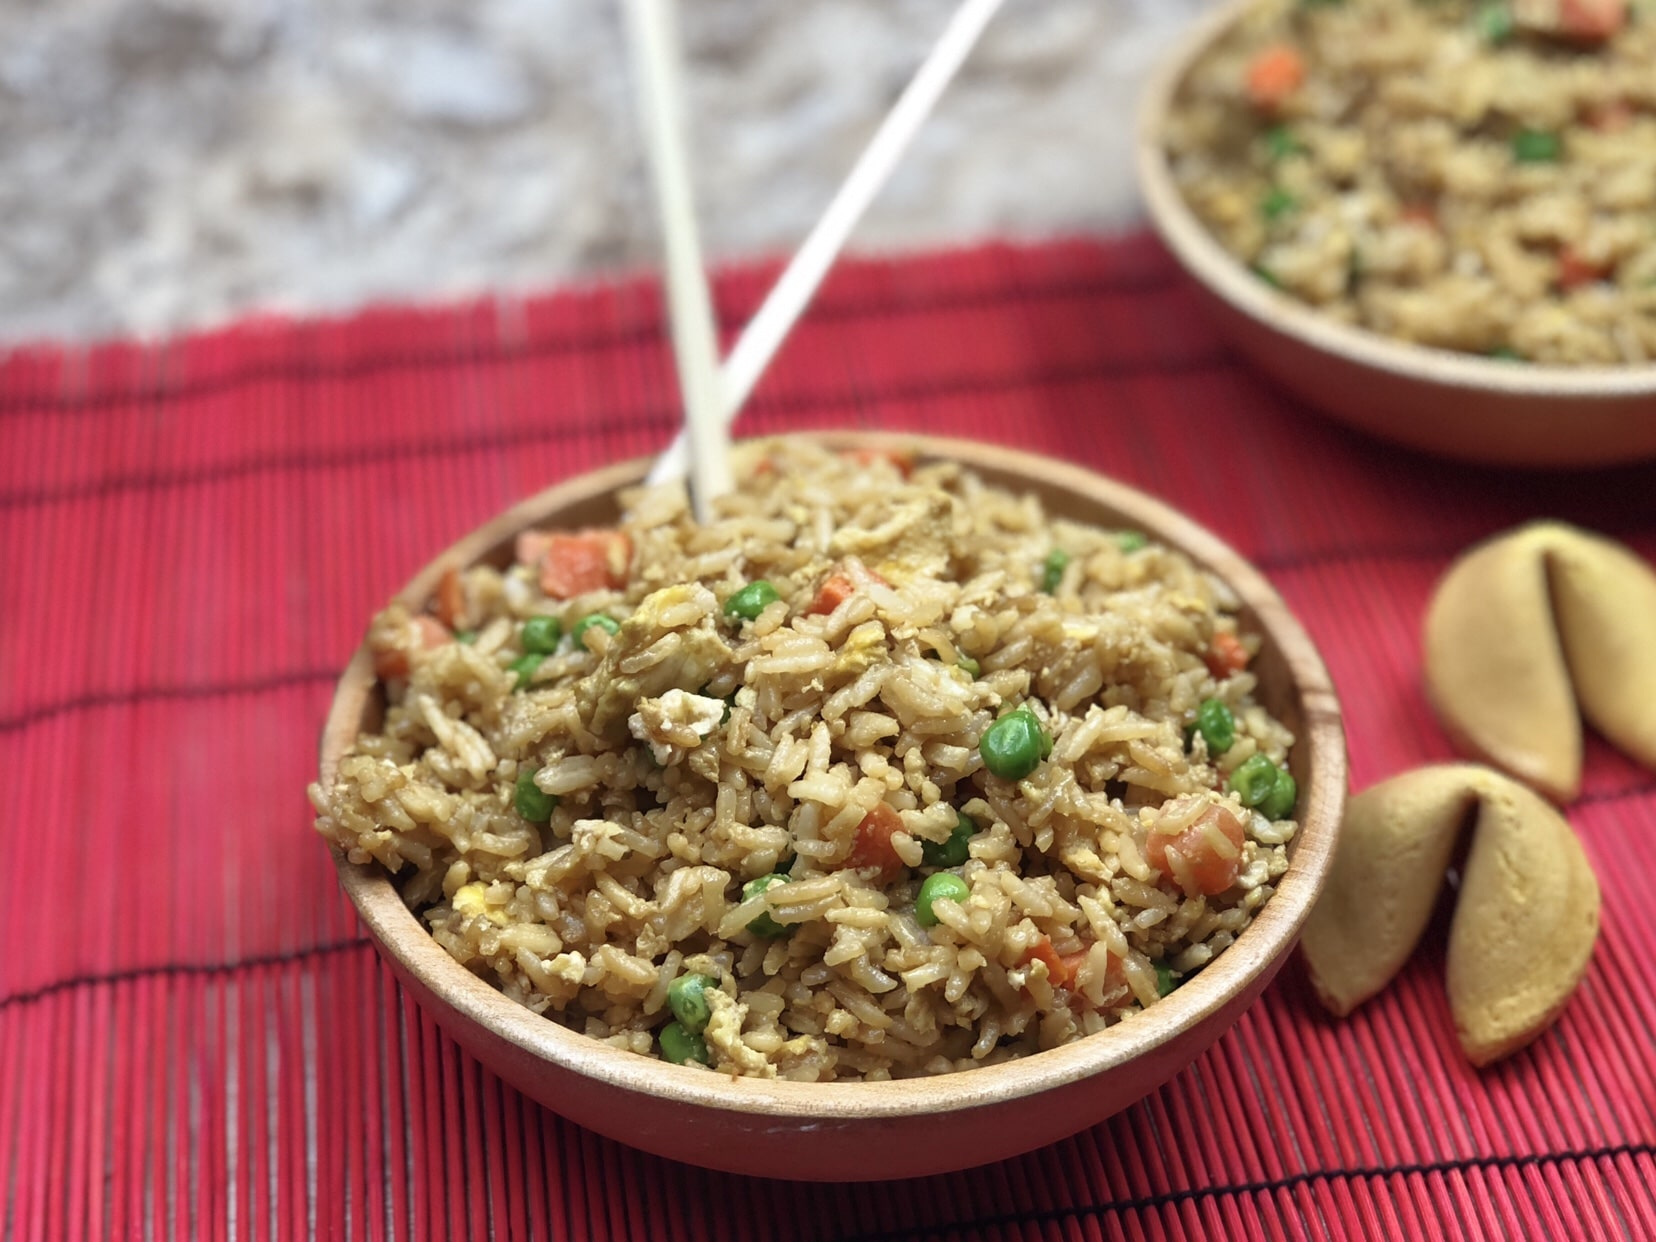 Forget ordering takeout and make your own Instant Pot Fried Rice that tastes better than takeout!  This fried rice in your instant pot is a straightforward recipe that gives your takeout flavors in under 10 minutes to make. #friedrice #instantpot #easy #easyrecipe #carrots #peas